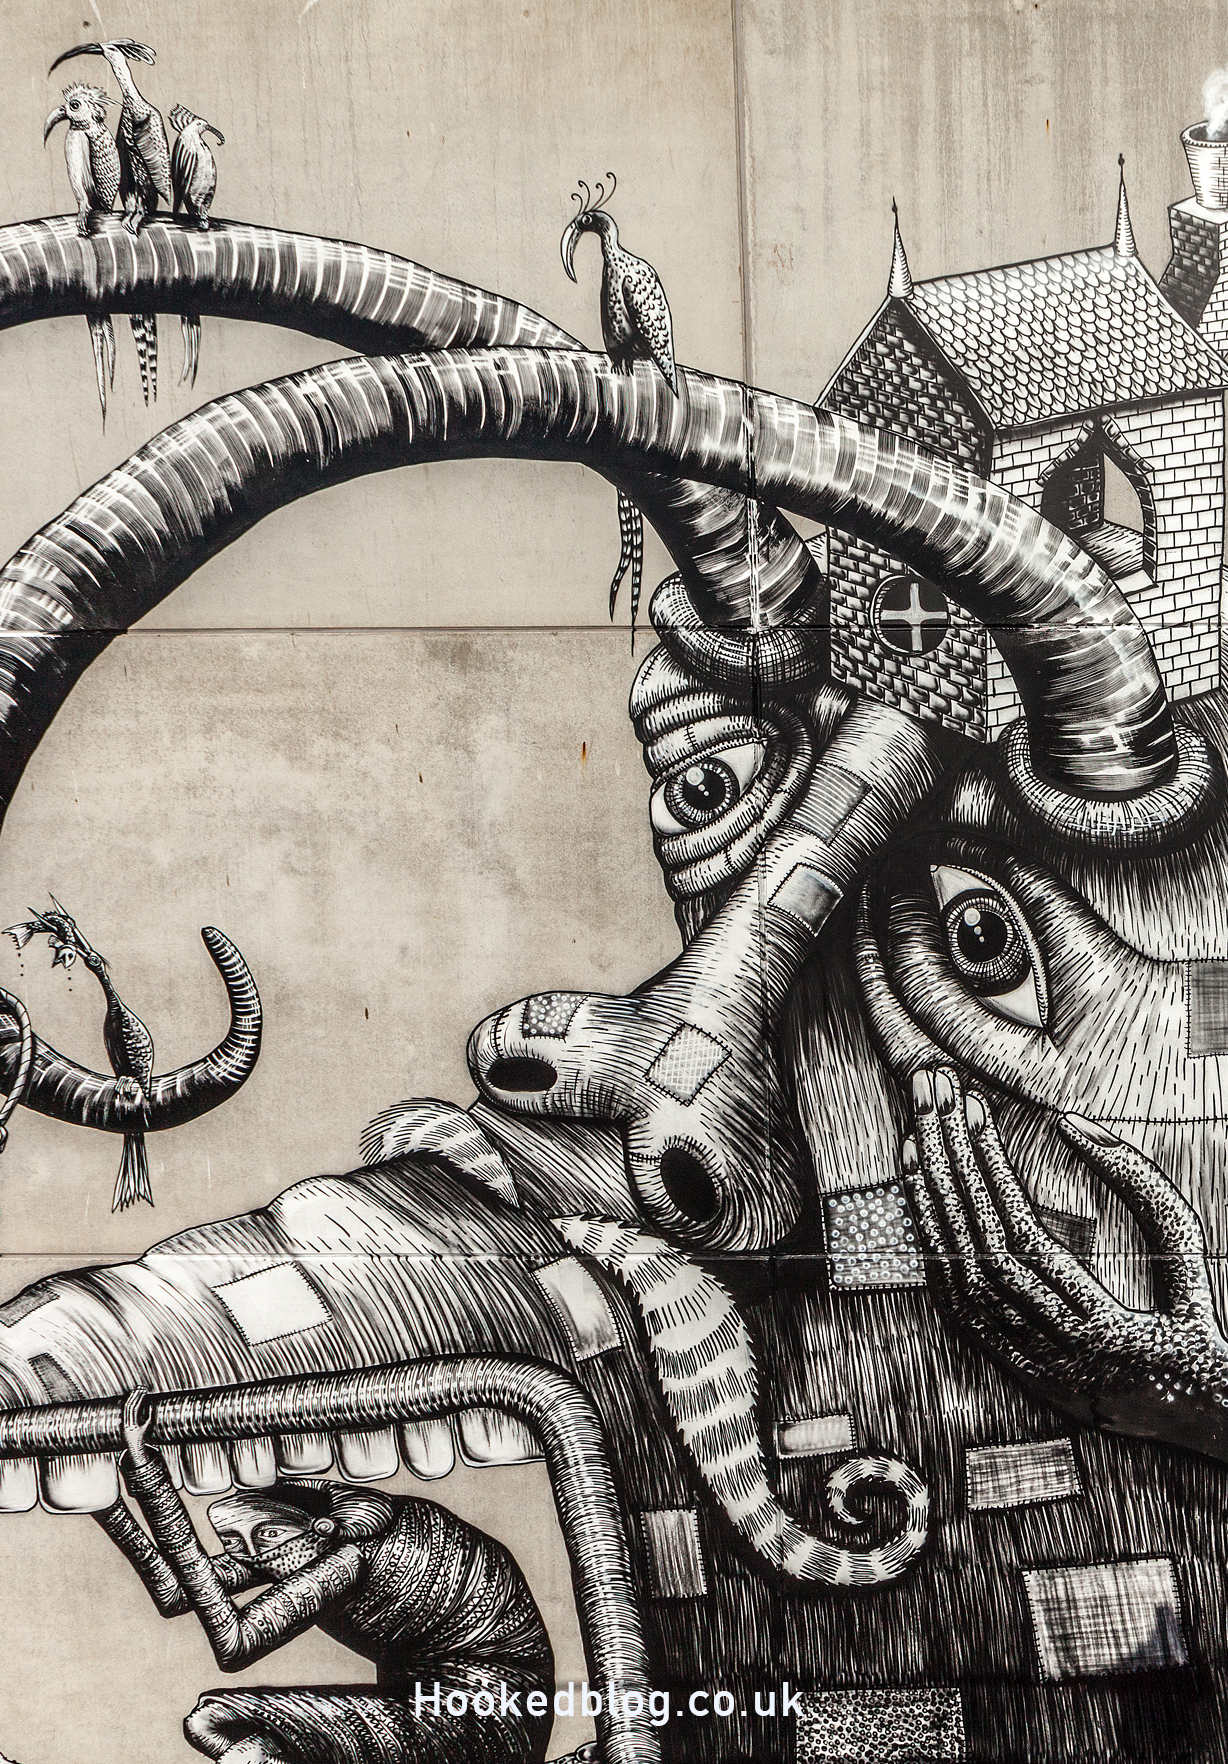 Detail of the Phlegm Mural in Ostend, Belgium